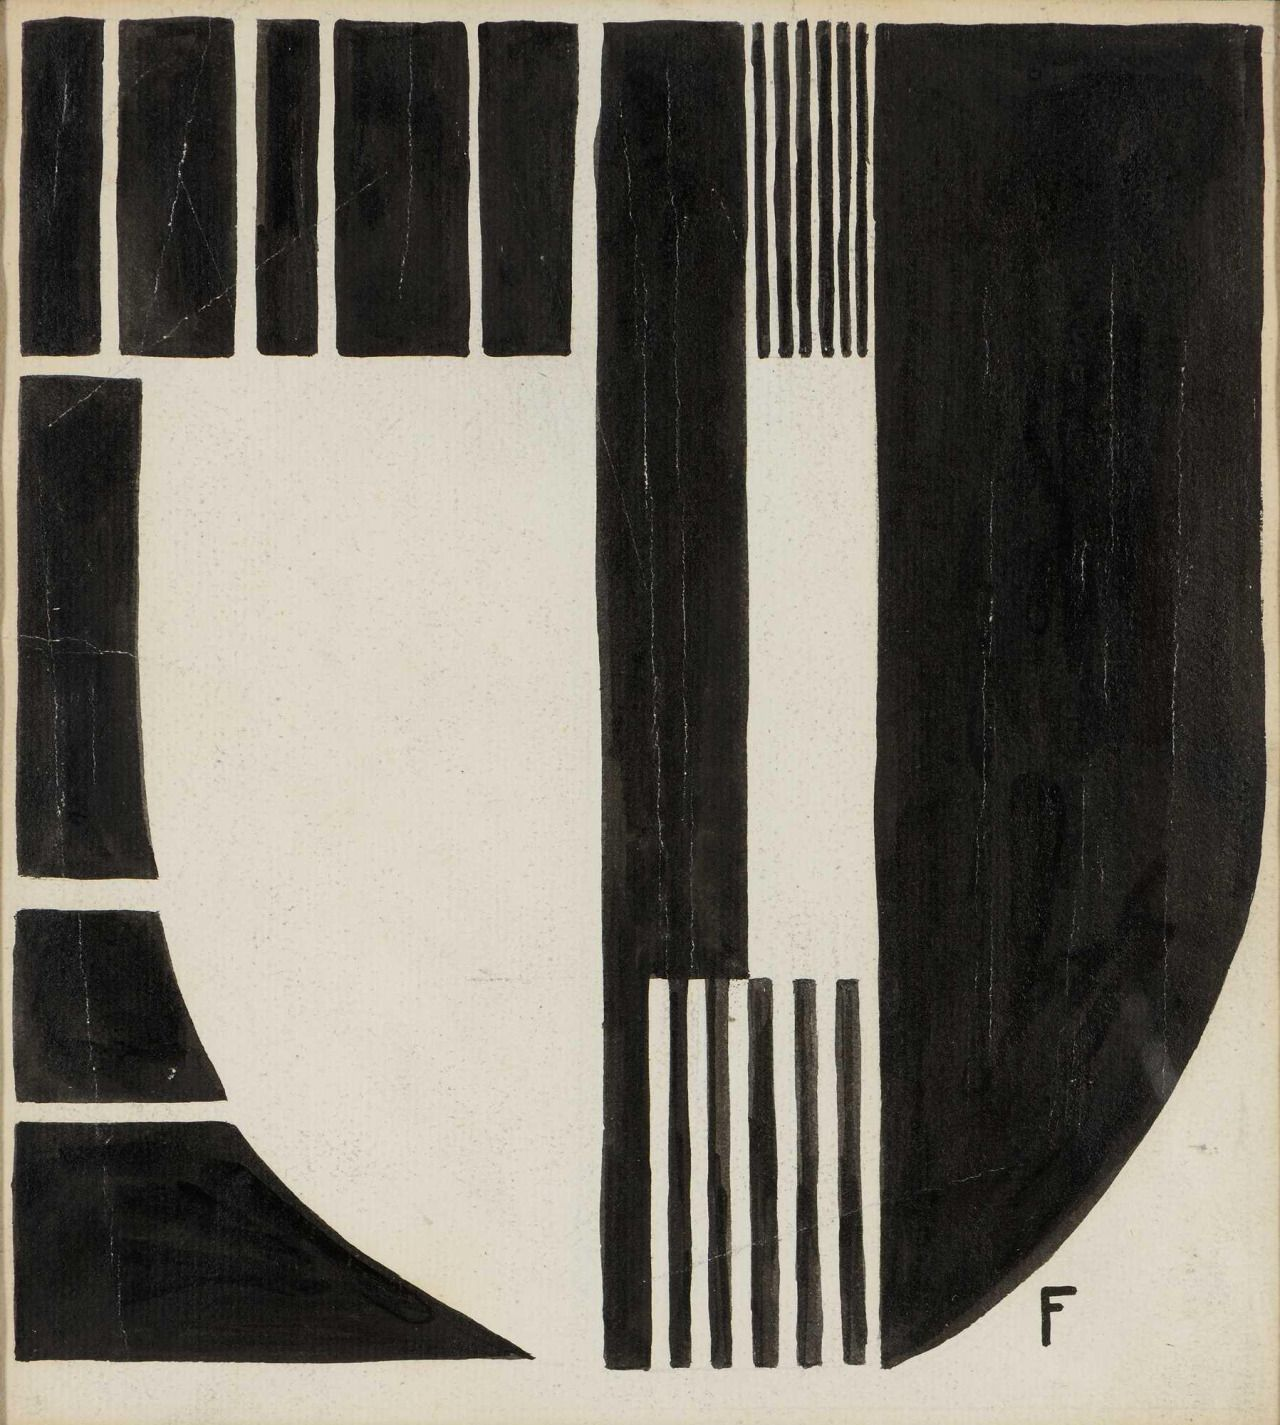 Otto Freundlich (German, 1878 - 1943) Thesis, synthesis, antithesis, 1937Indian ink on paper, 25.5 x 23.4 cm